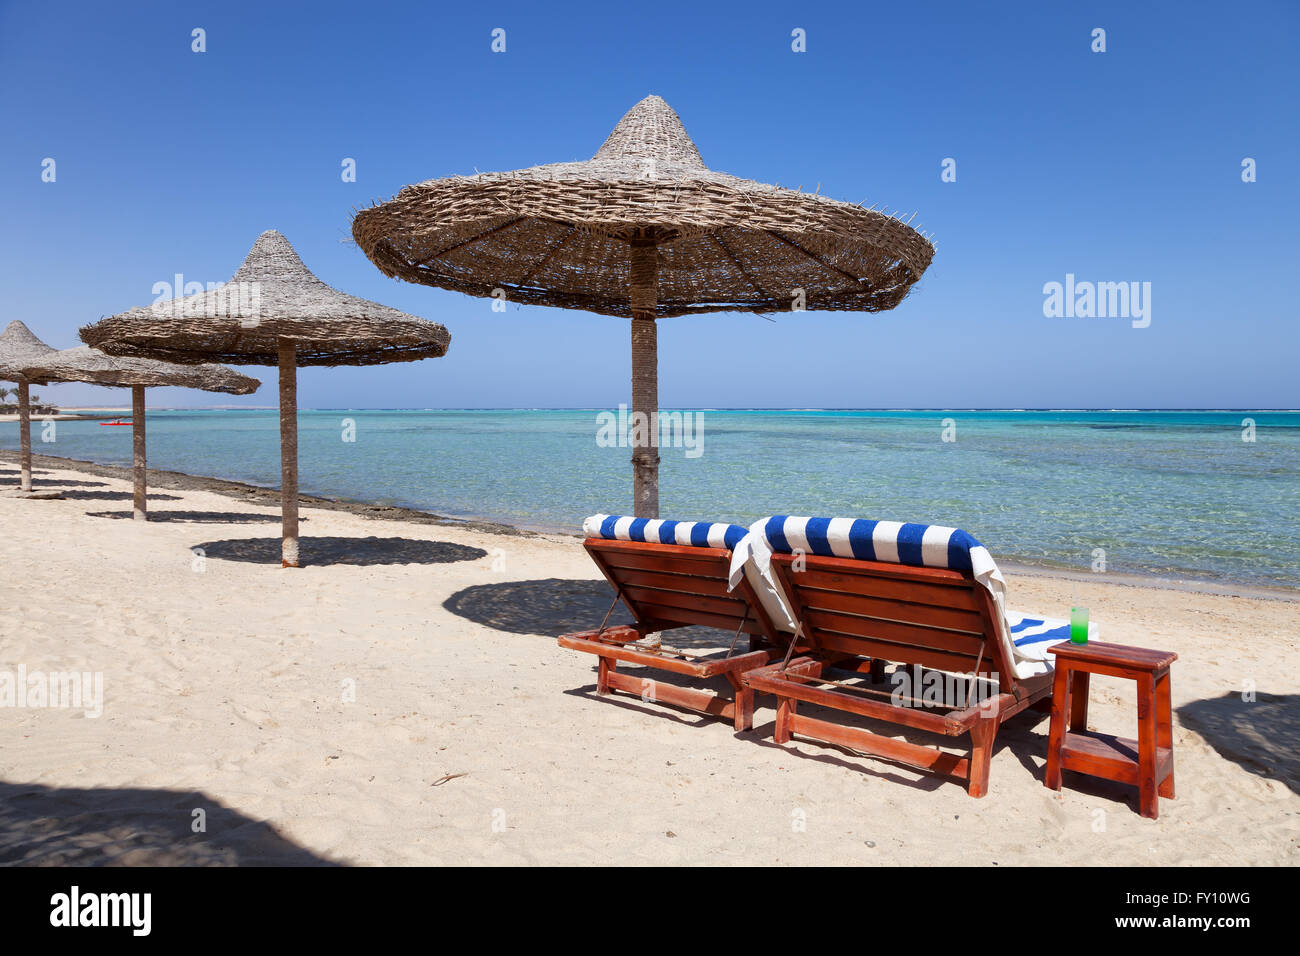 Marsa Alam beach with the two beach beds and umbrella, Egypt - Stock Image